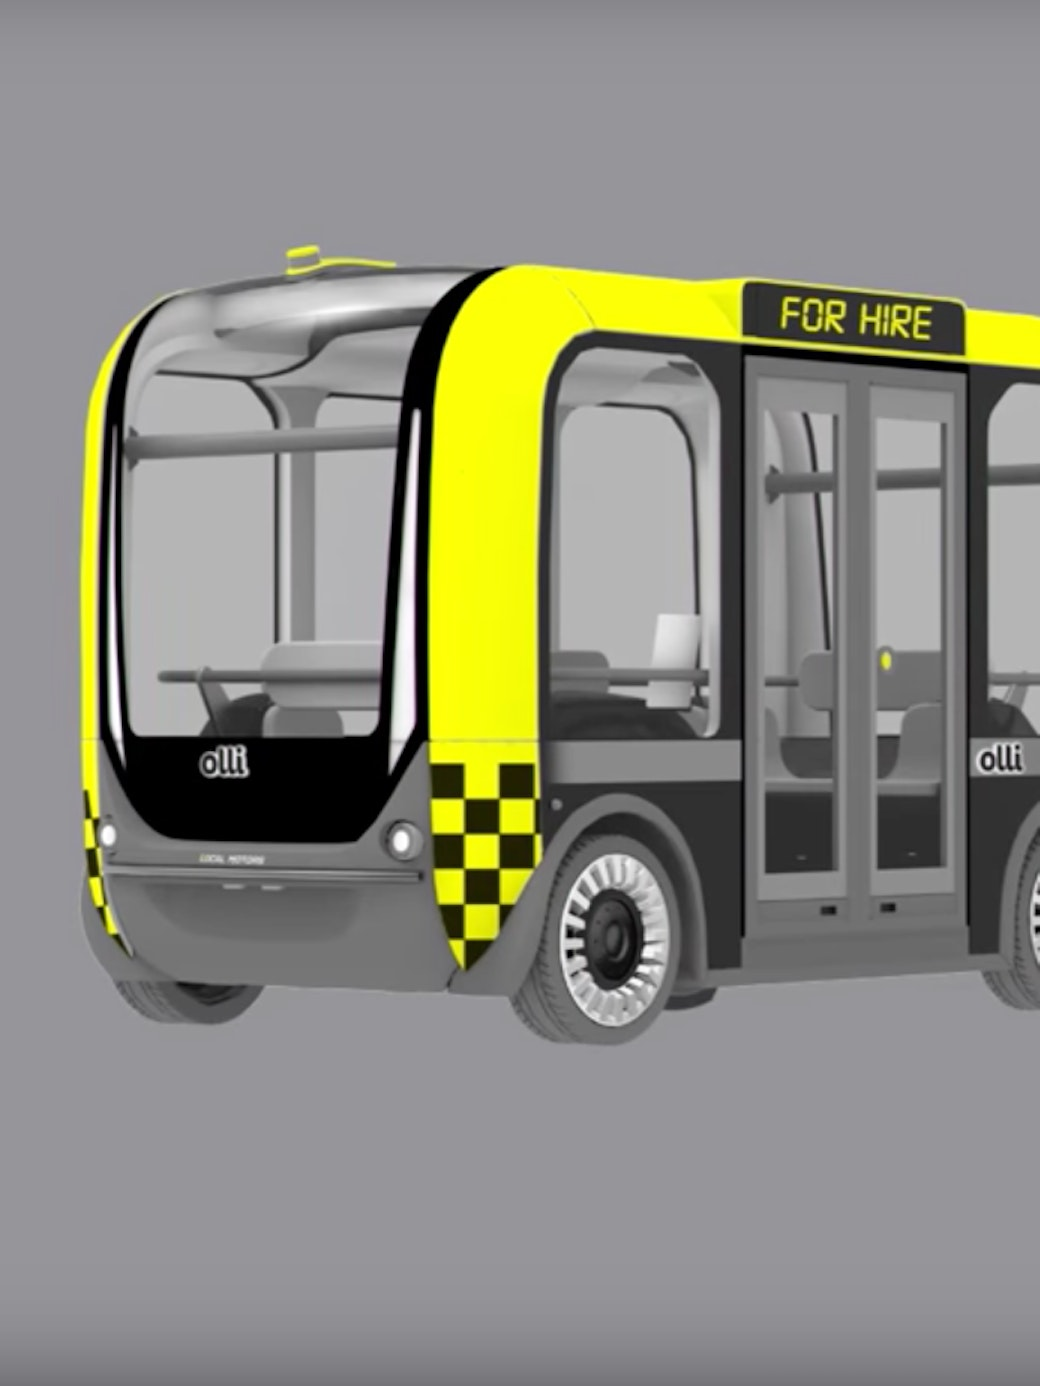 Local Motors' self-driving bus, Olli, on the streets.